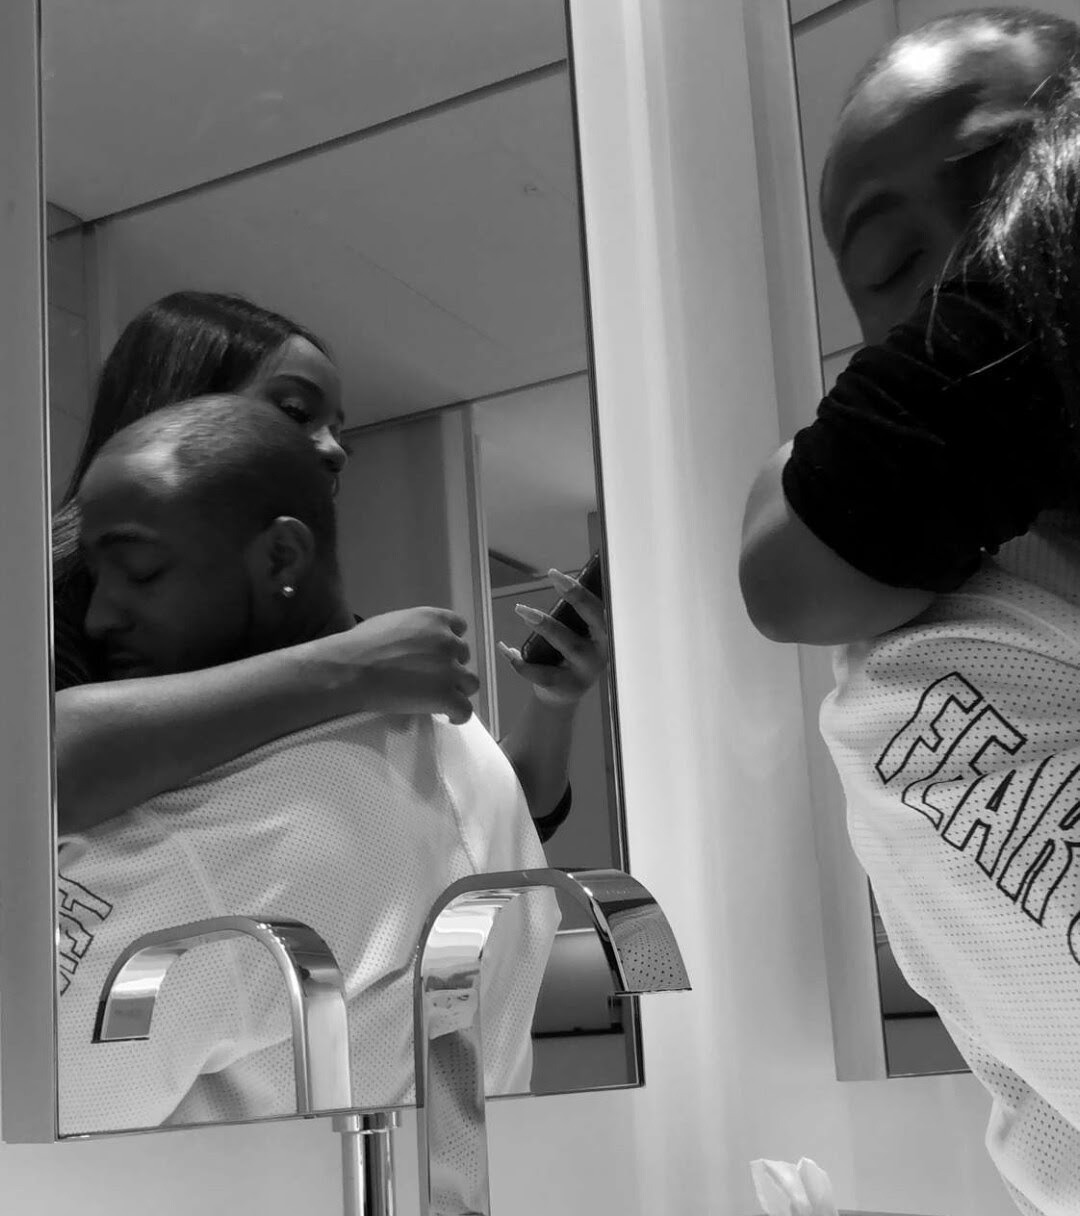 New loved up photos of Davido and his girlfriend, Chioma after his concert in London